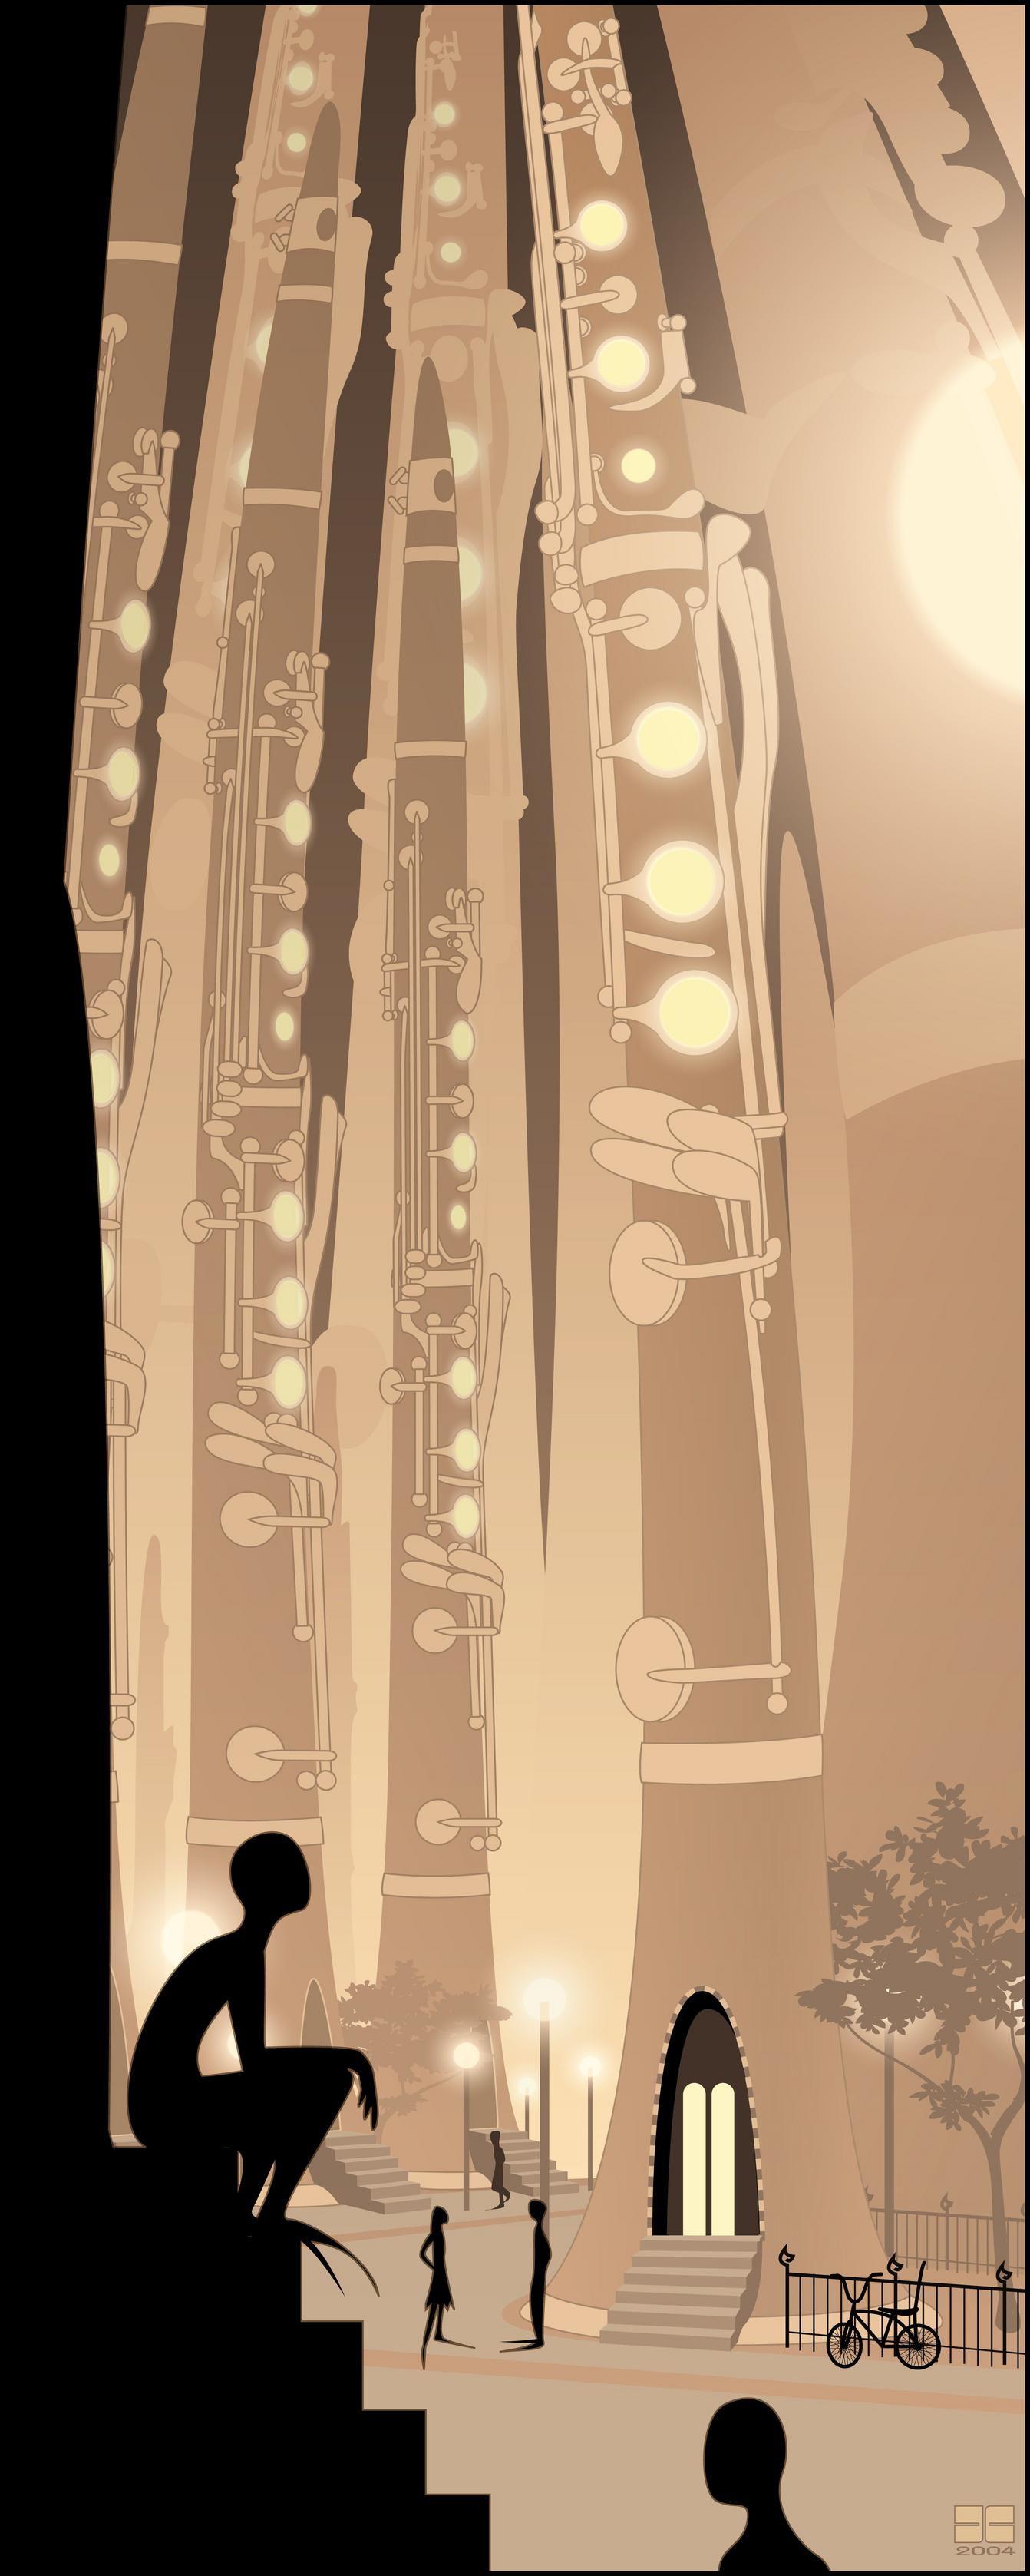 clarinetropolis, vector, jazz, cities, city, long shoes, clarinets, music